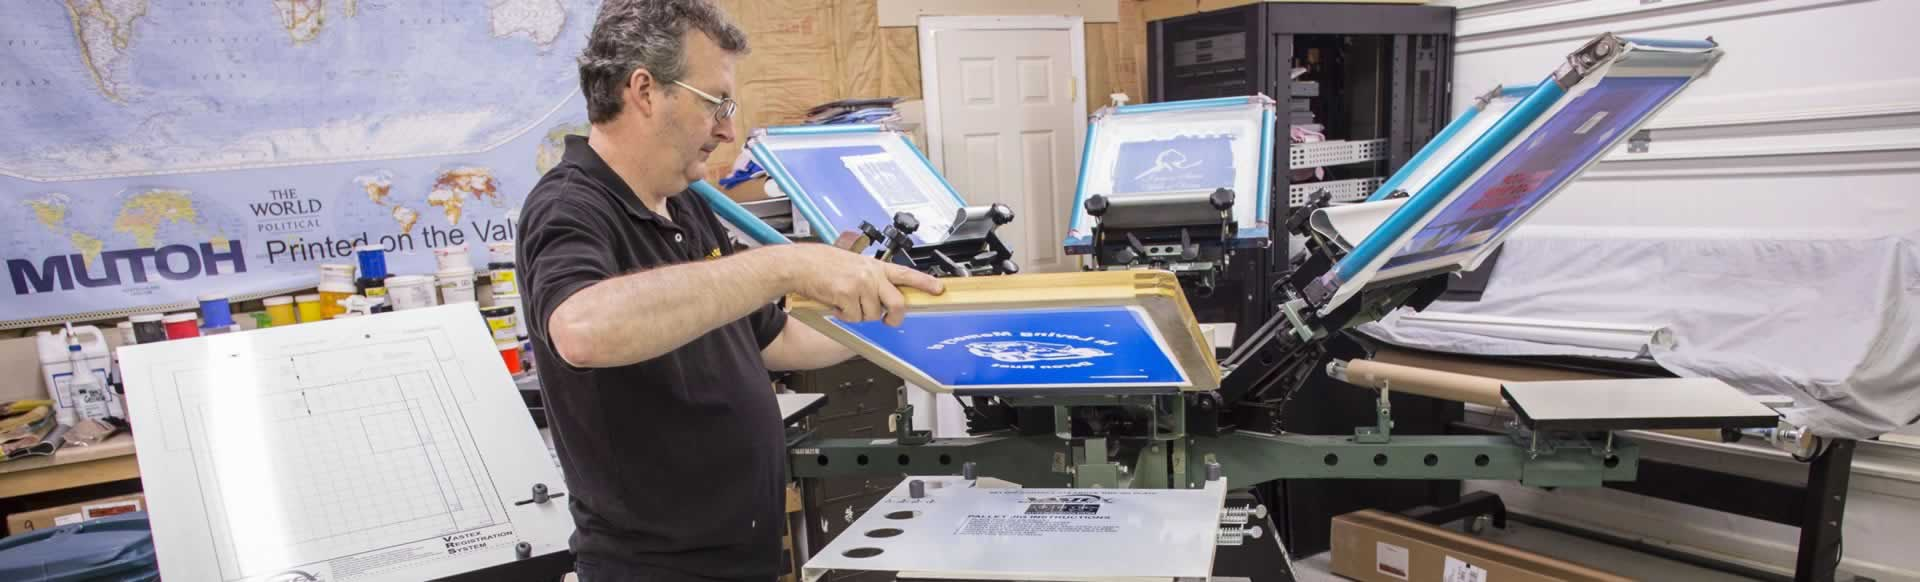 Builder of Race Engines Builds High Performance Screen Printing Business